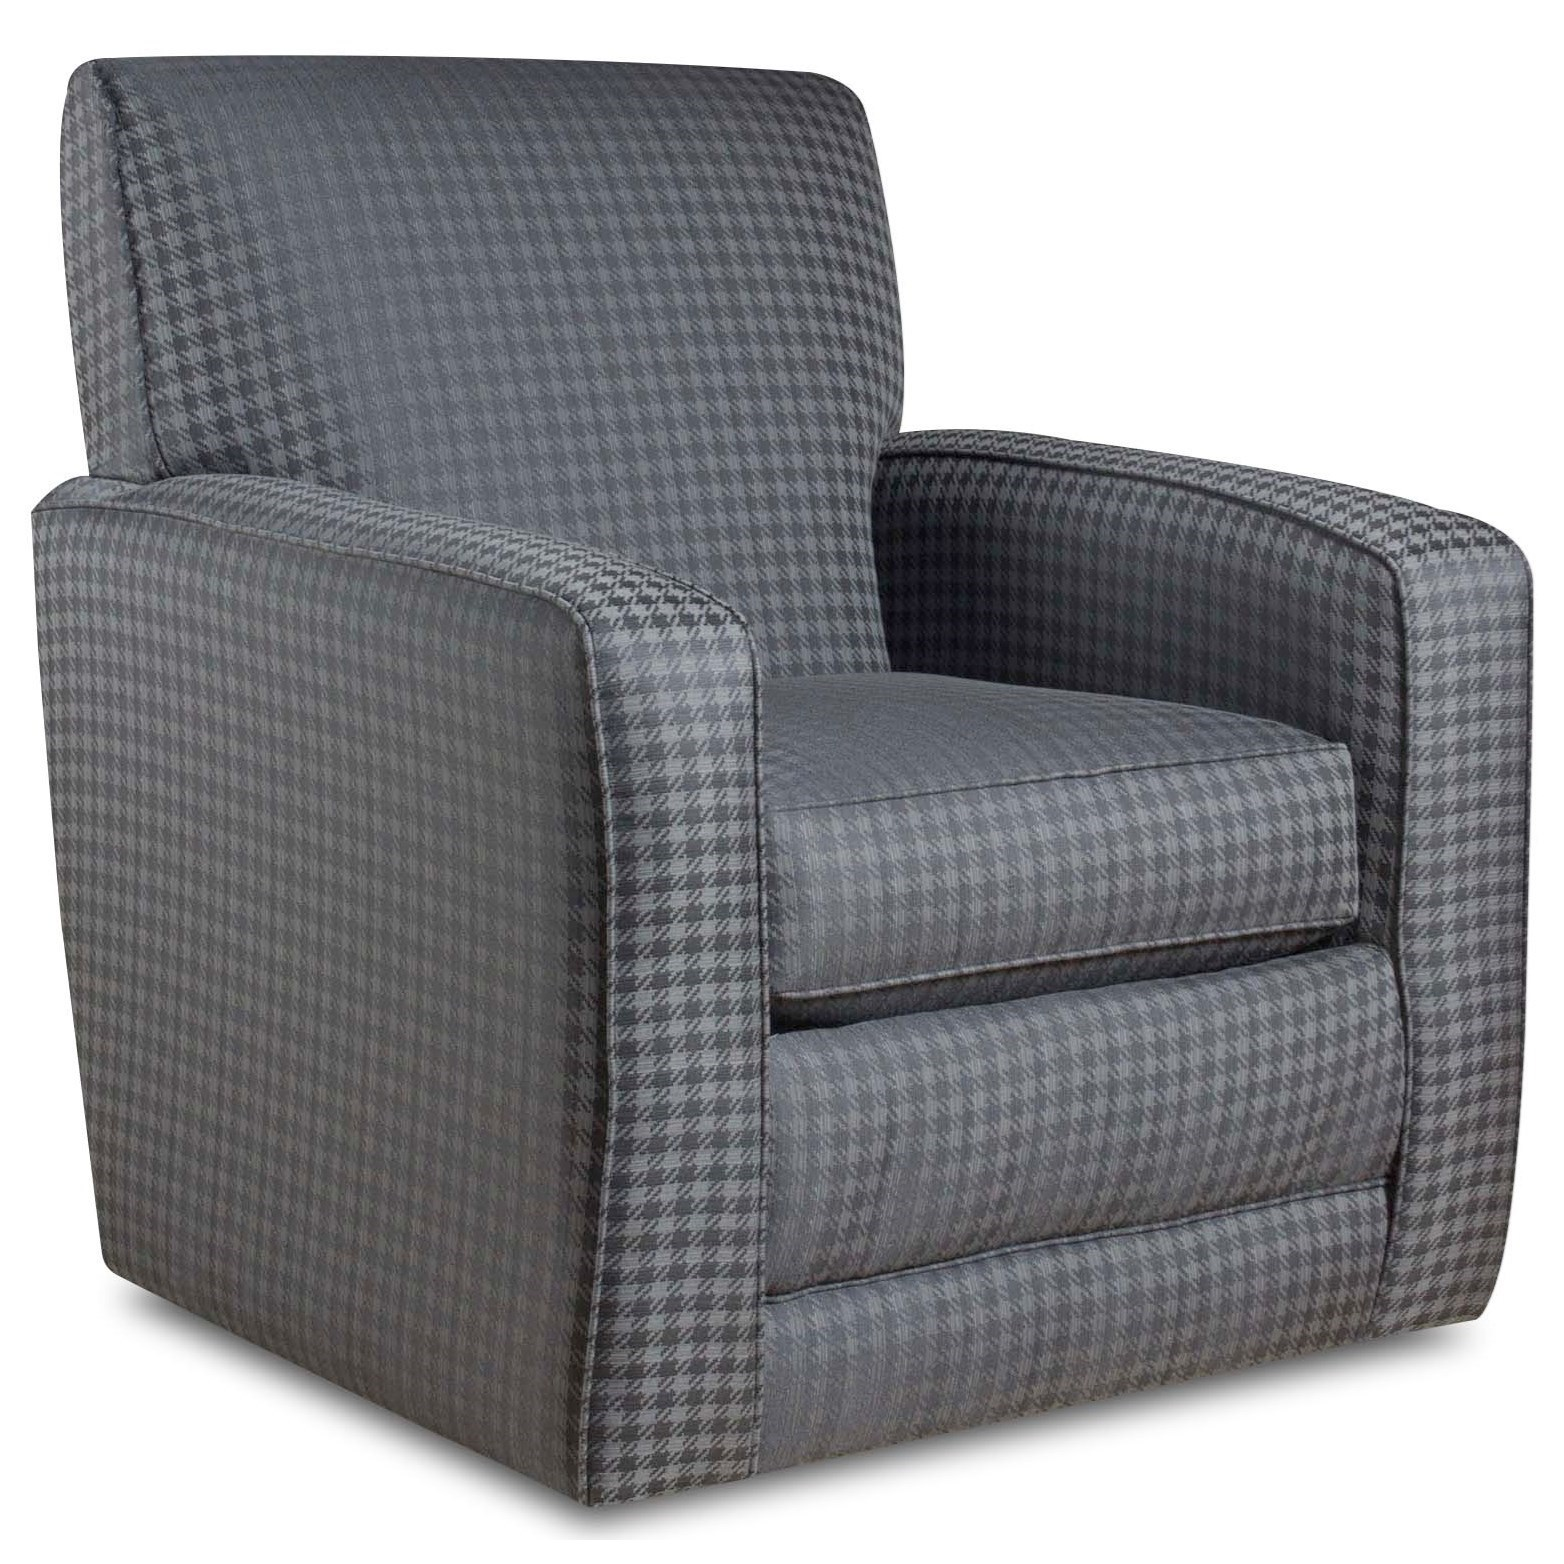 26E0 Swivel Accent Chair by Corinthian at Story & Lee Furniture